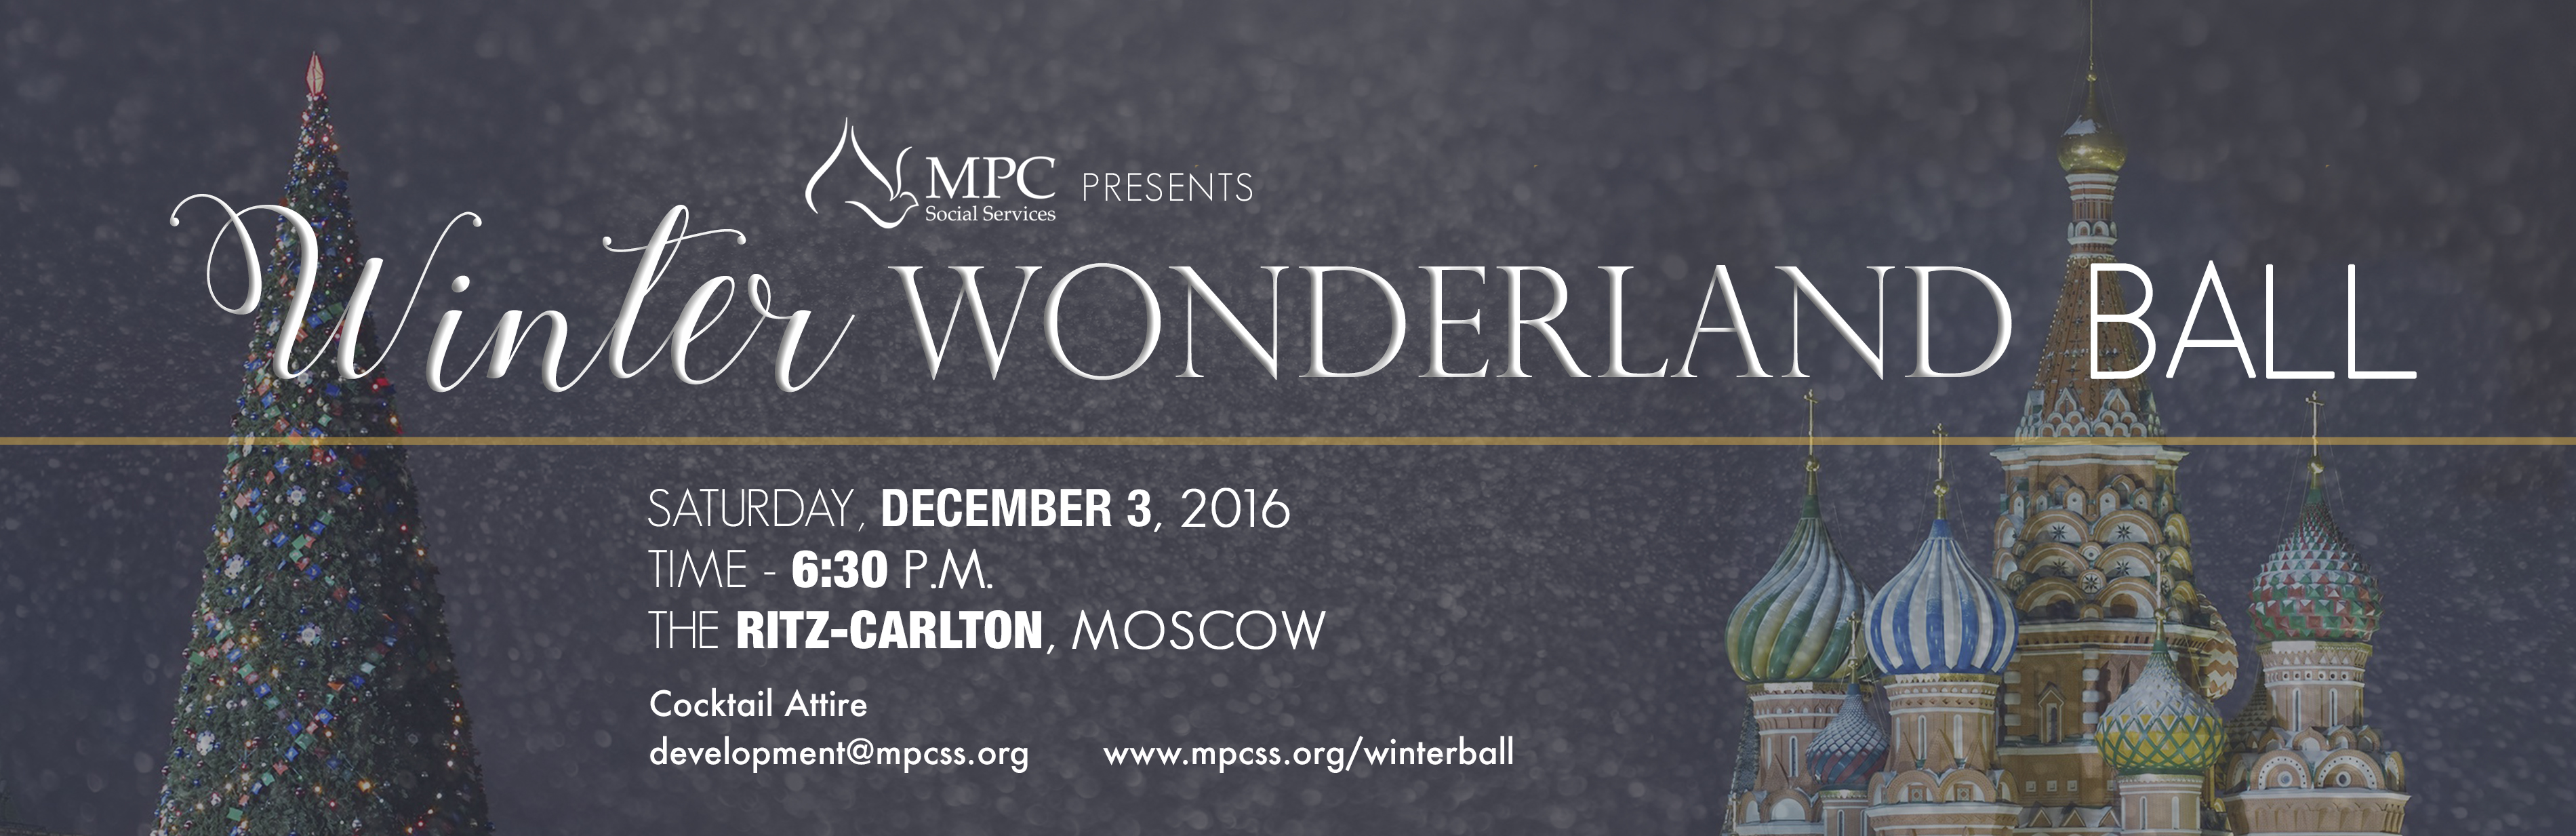 MPC Winter Wonderland Ball, December 3